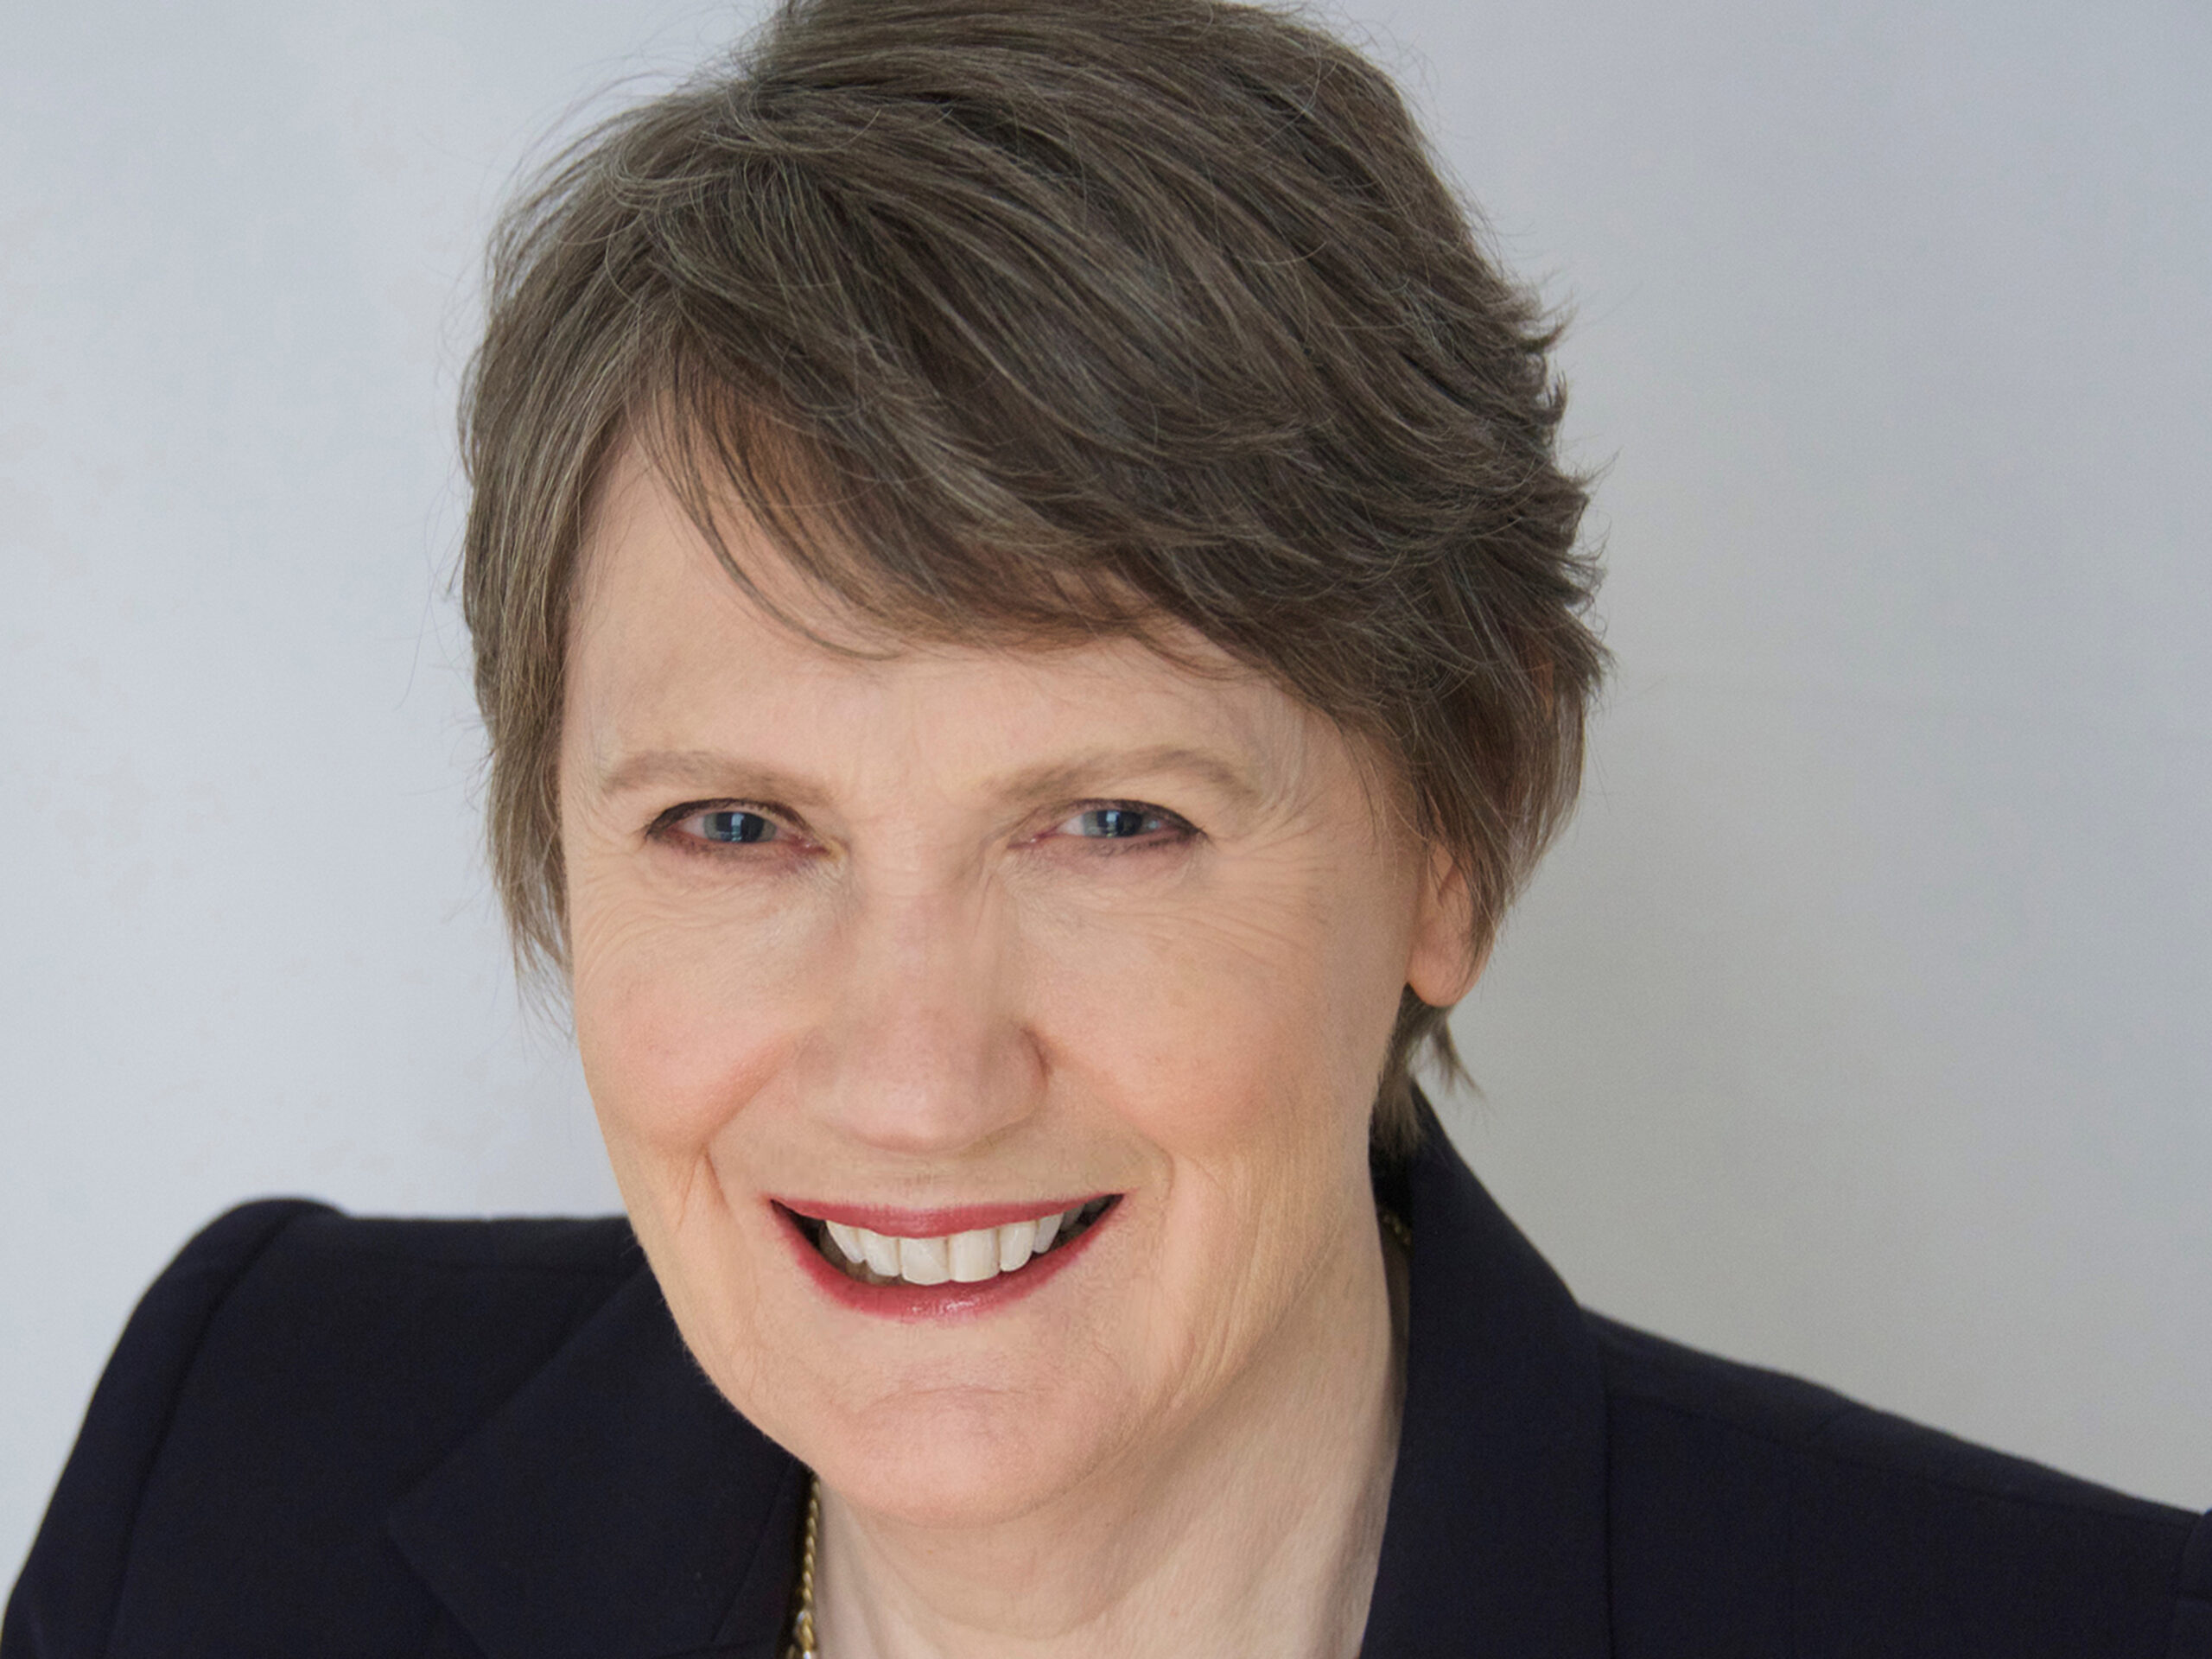 Helen Clark, Prime Minister of New Zealand from 1999 to 2008